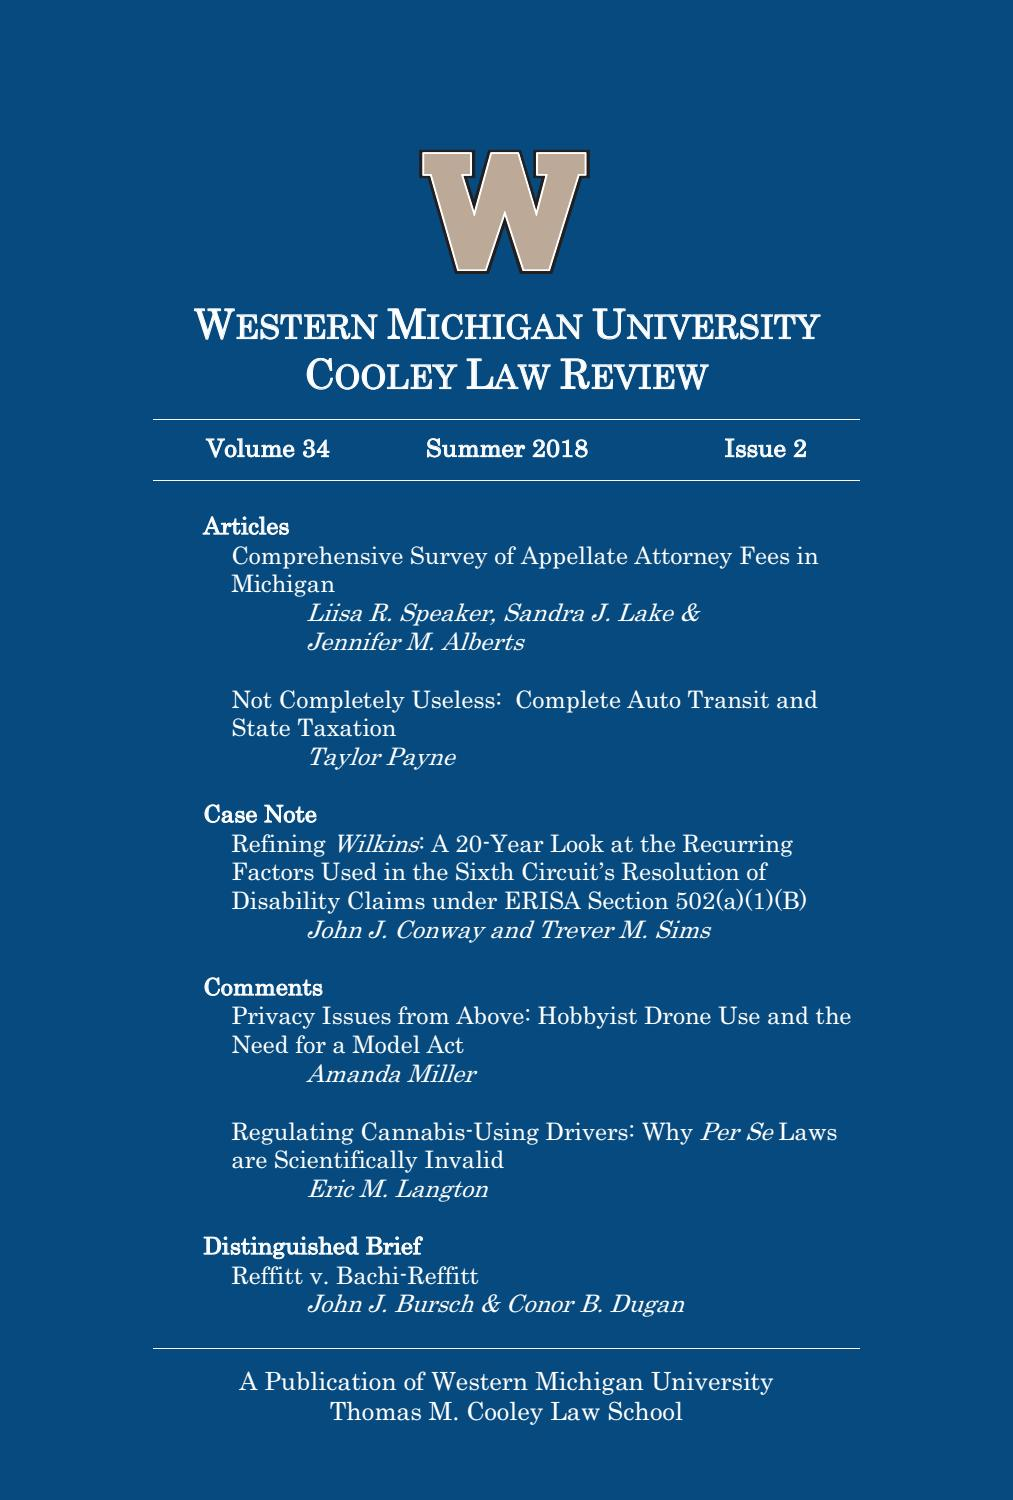 Western Michigan University Cooley Law Review Volume 34 Summer 2018 Issue 2 By Wmu Cooley Law School Issuu